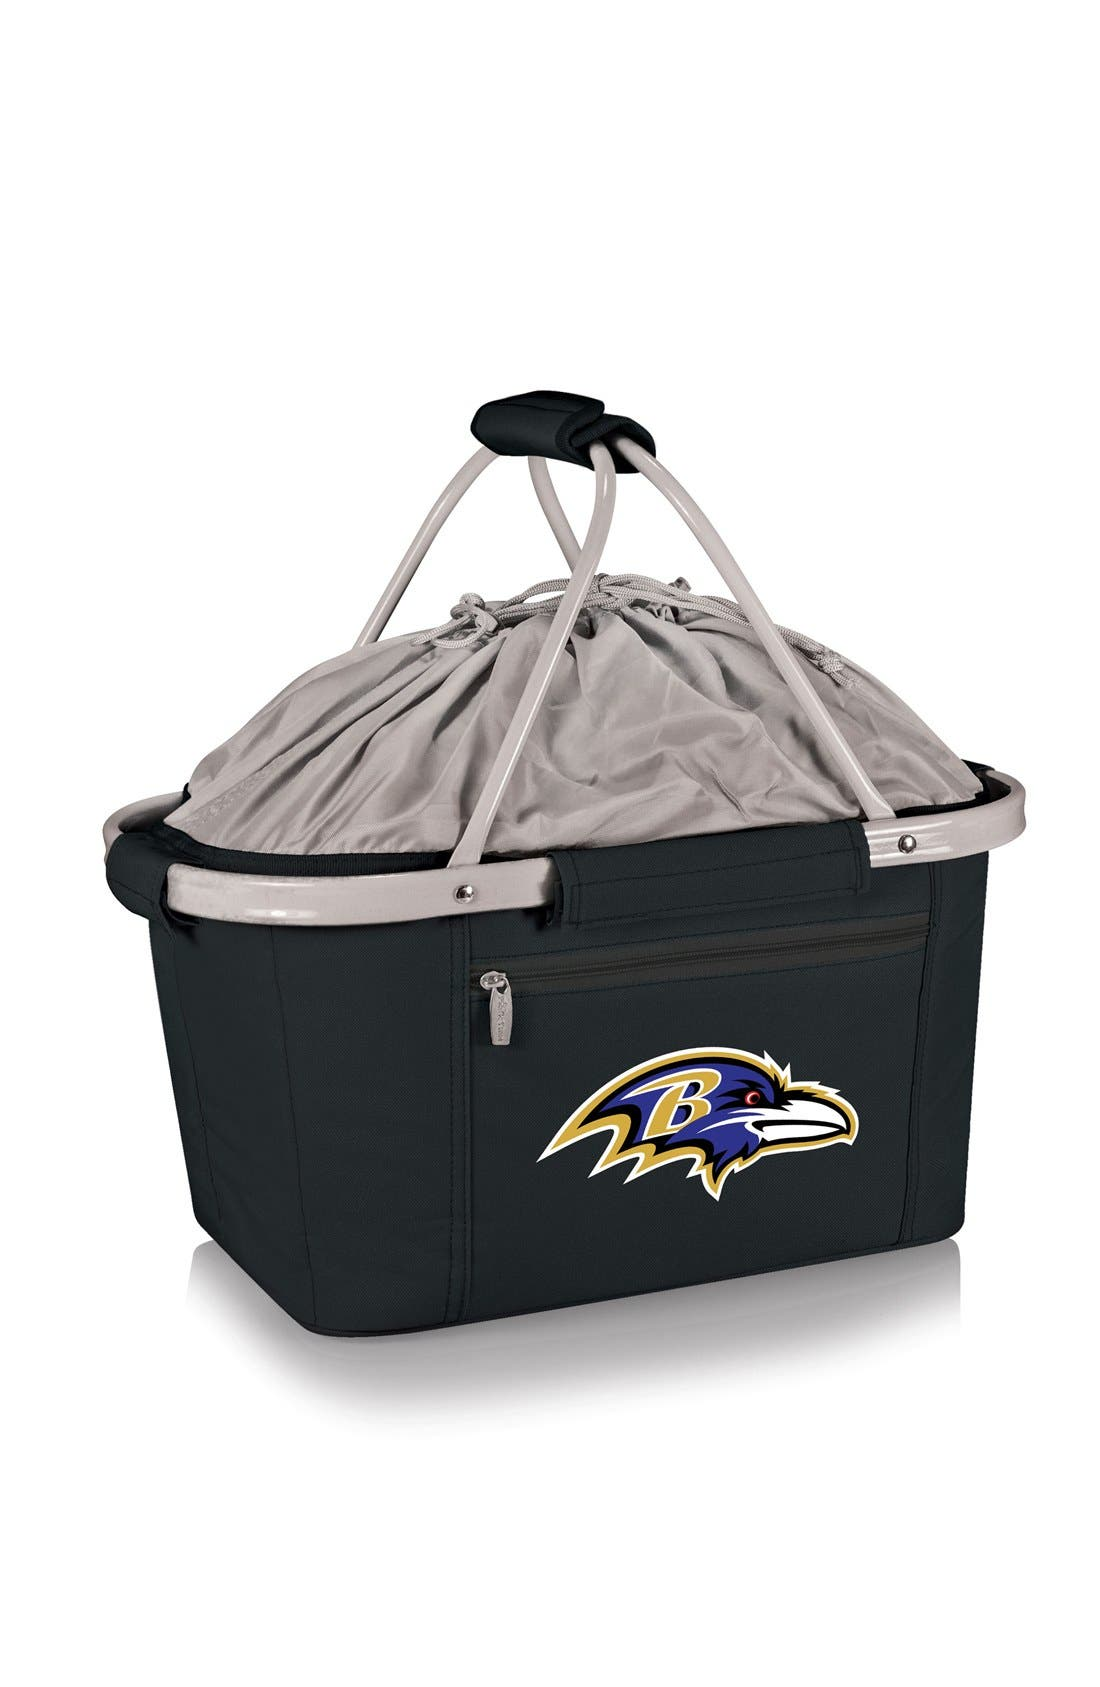 Alternate Image 1 Selected - Picnic Time Metro NFL Collapsible Insulated Basket